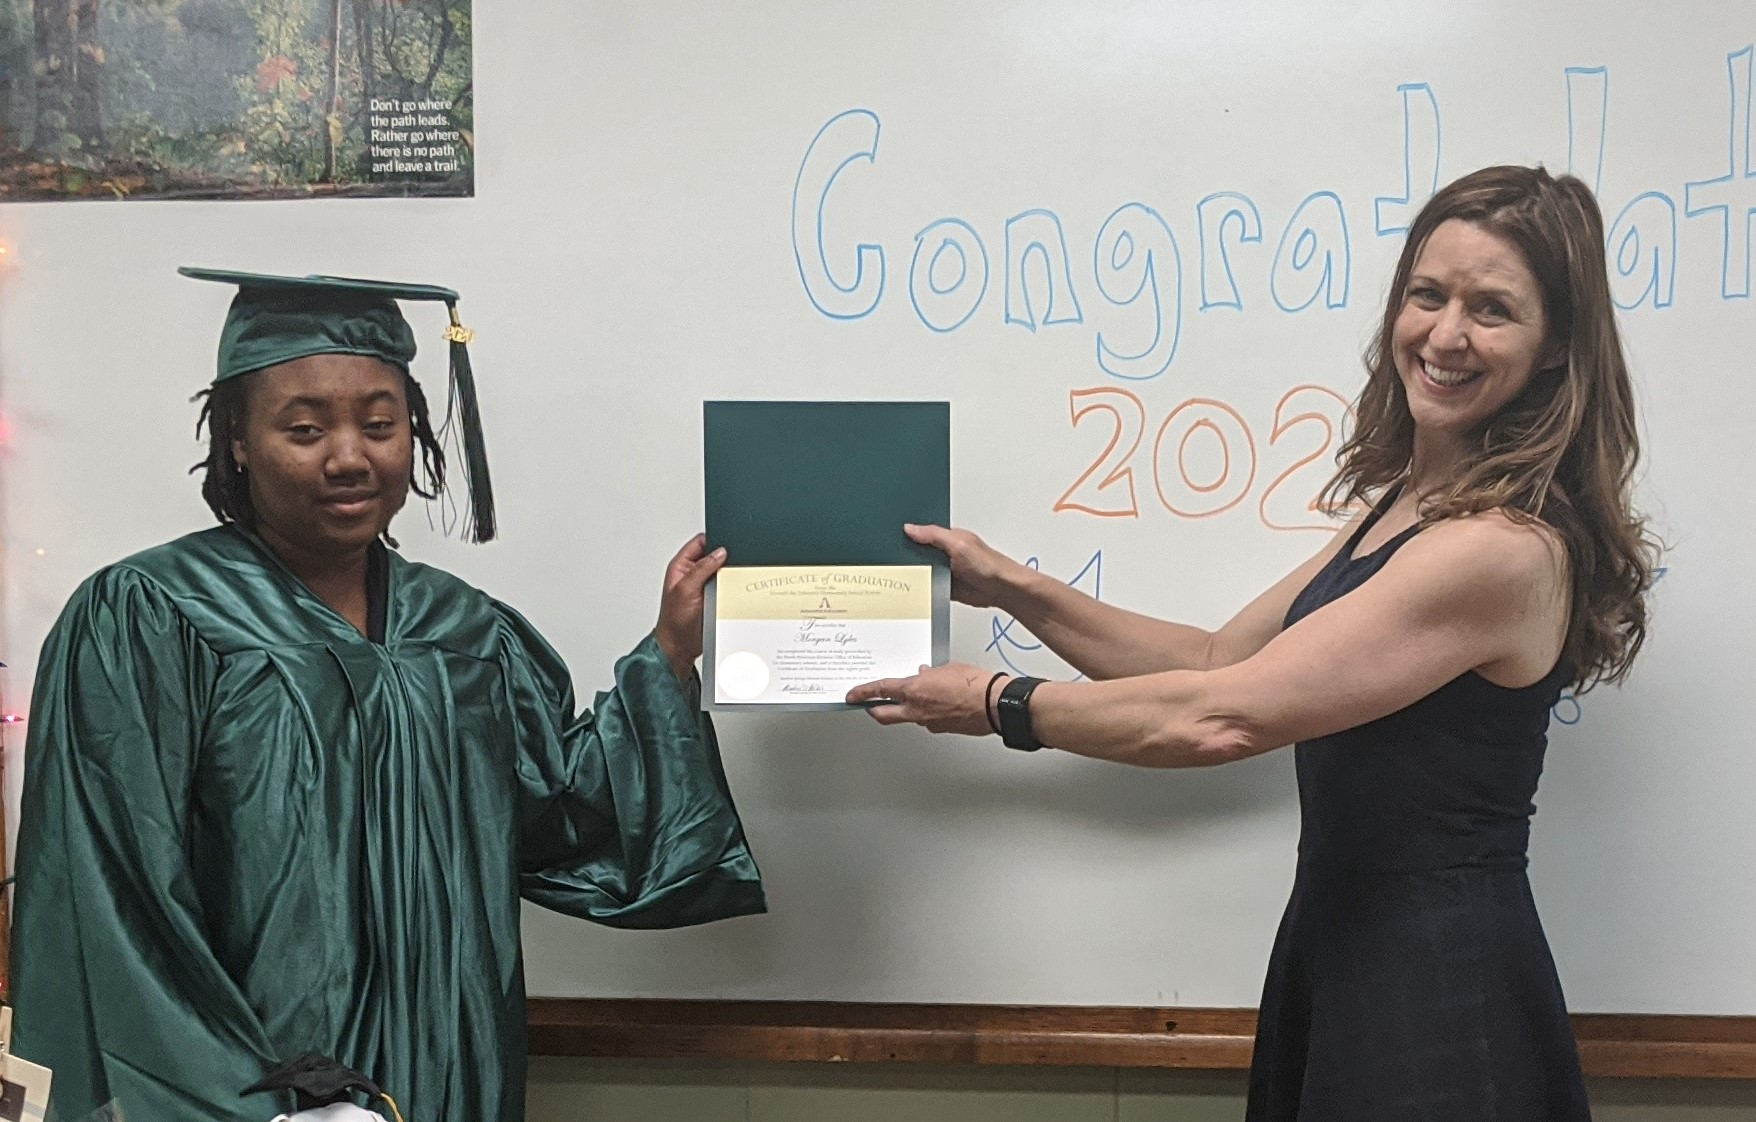 SPRINGS ADVENTIST ACADEMY CELEBRATES THE CLASS OF 2020